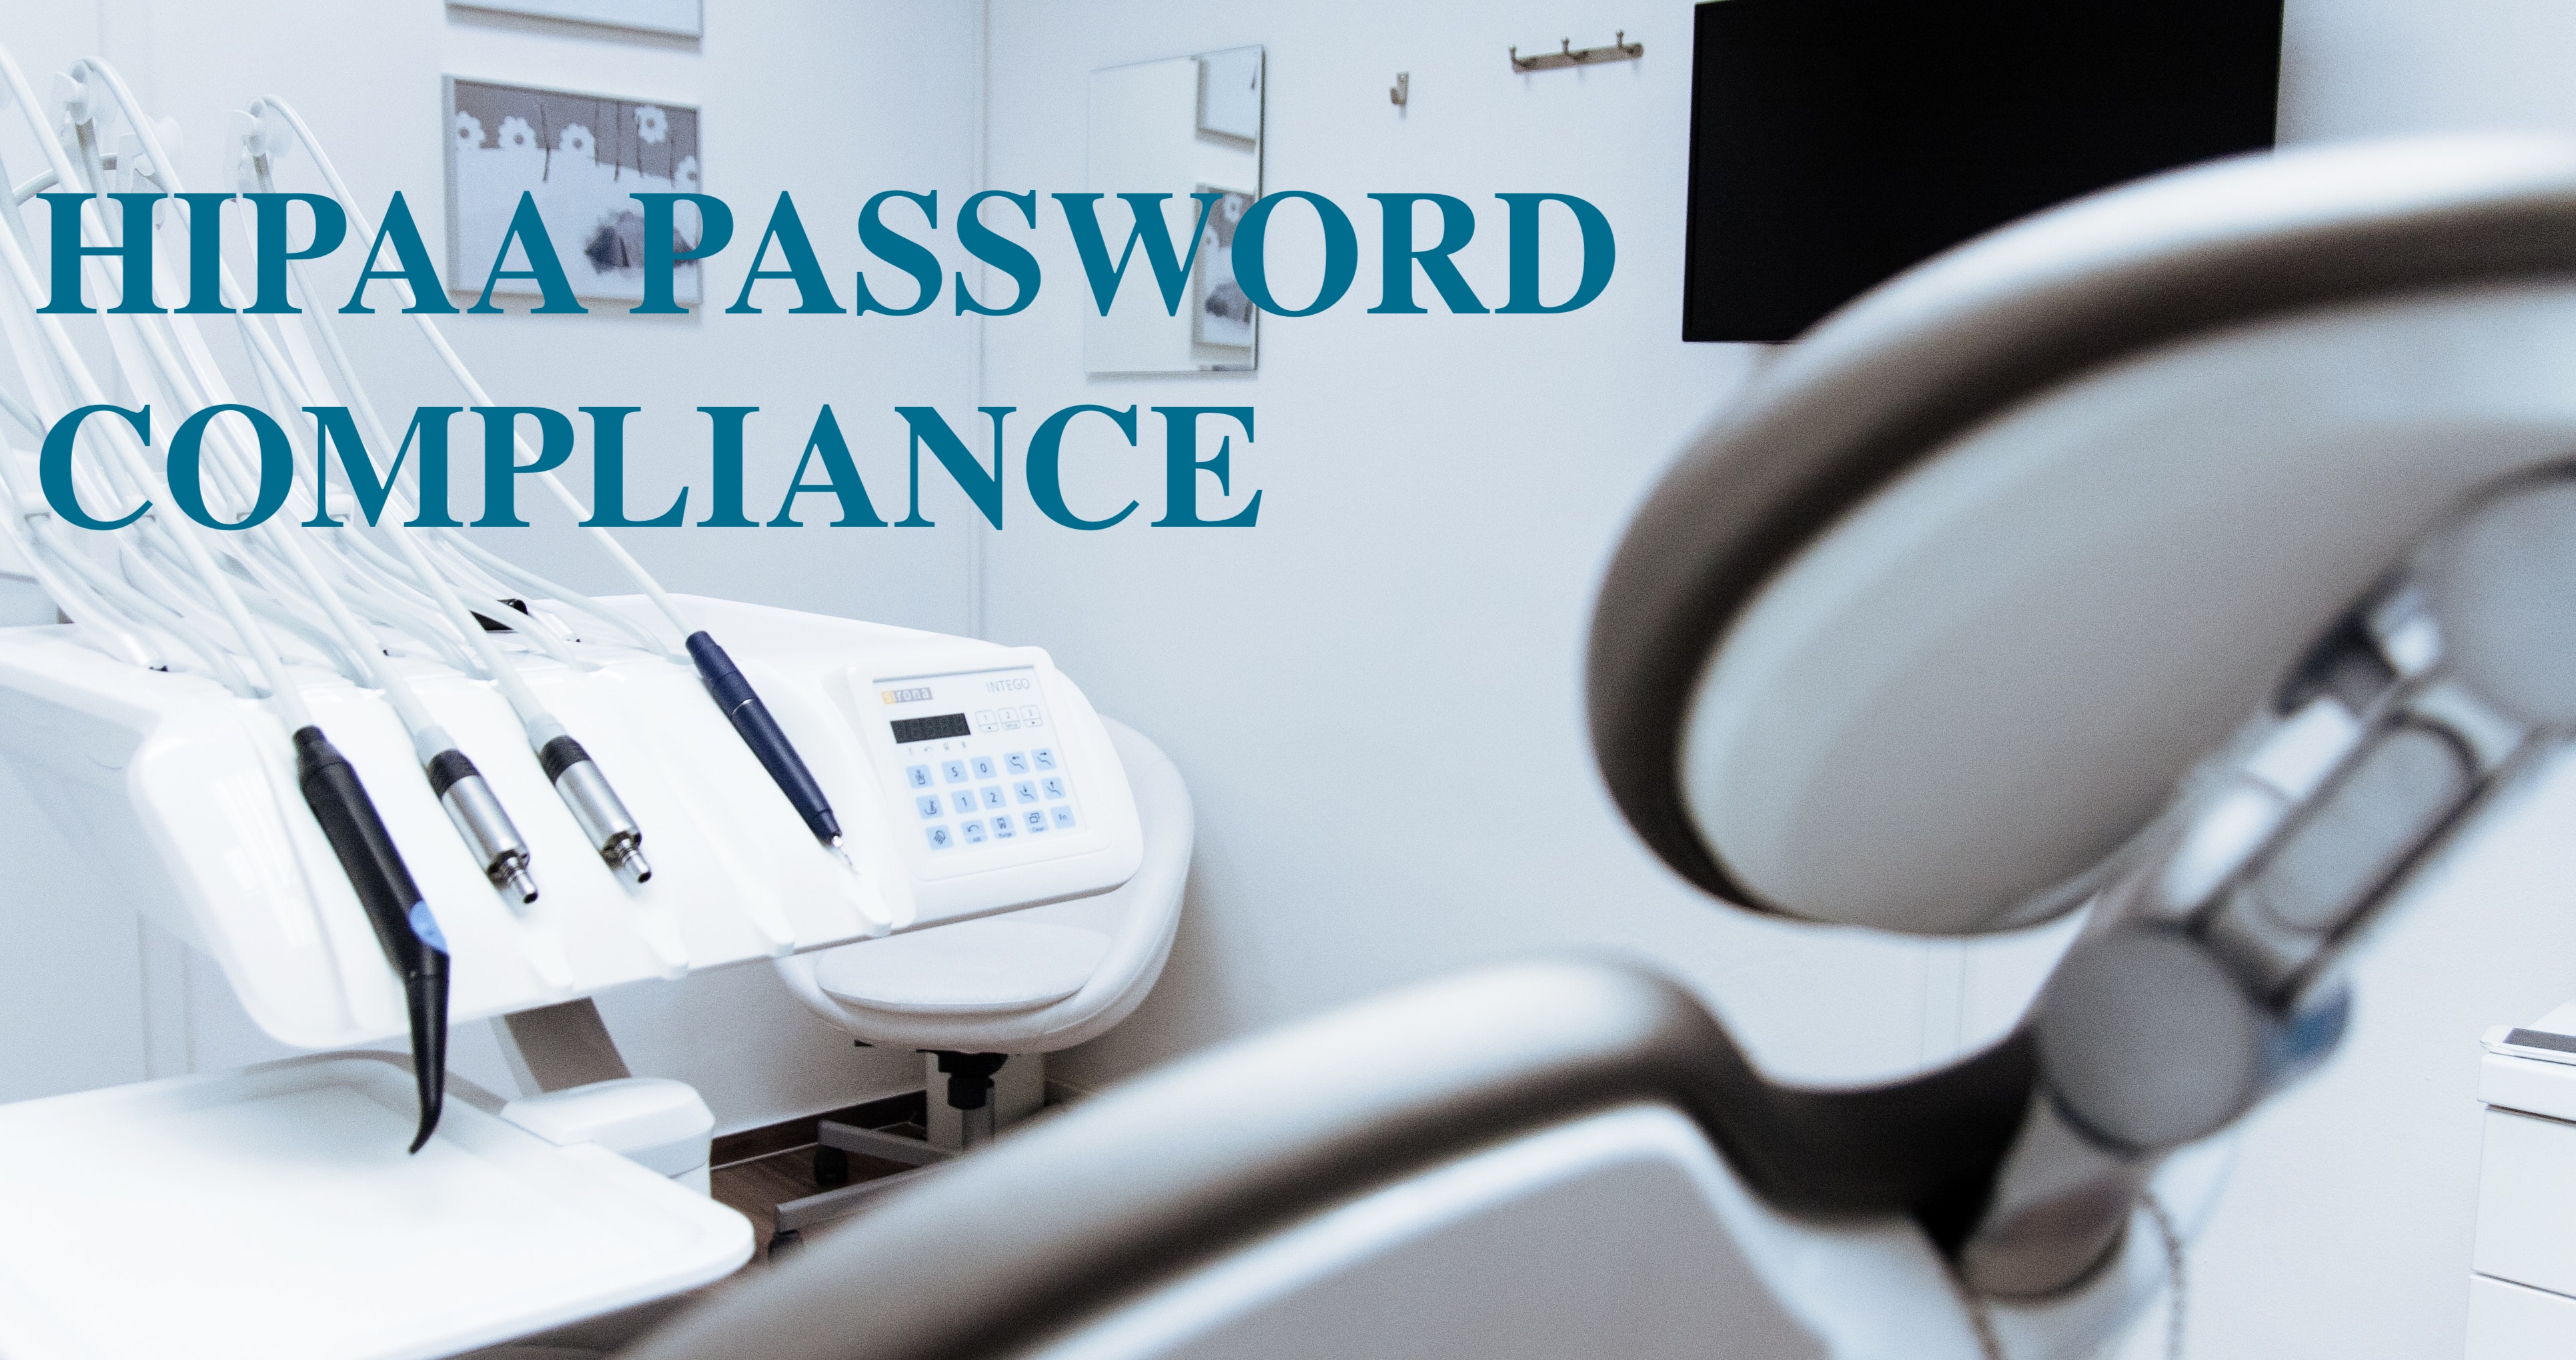 Recommendations For HIPAA Password Compliance: https://www.enzoic.com/hipaa-password-compliance/